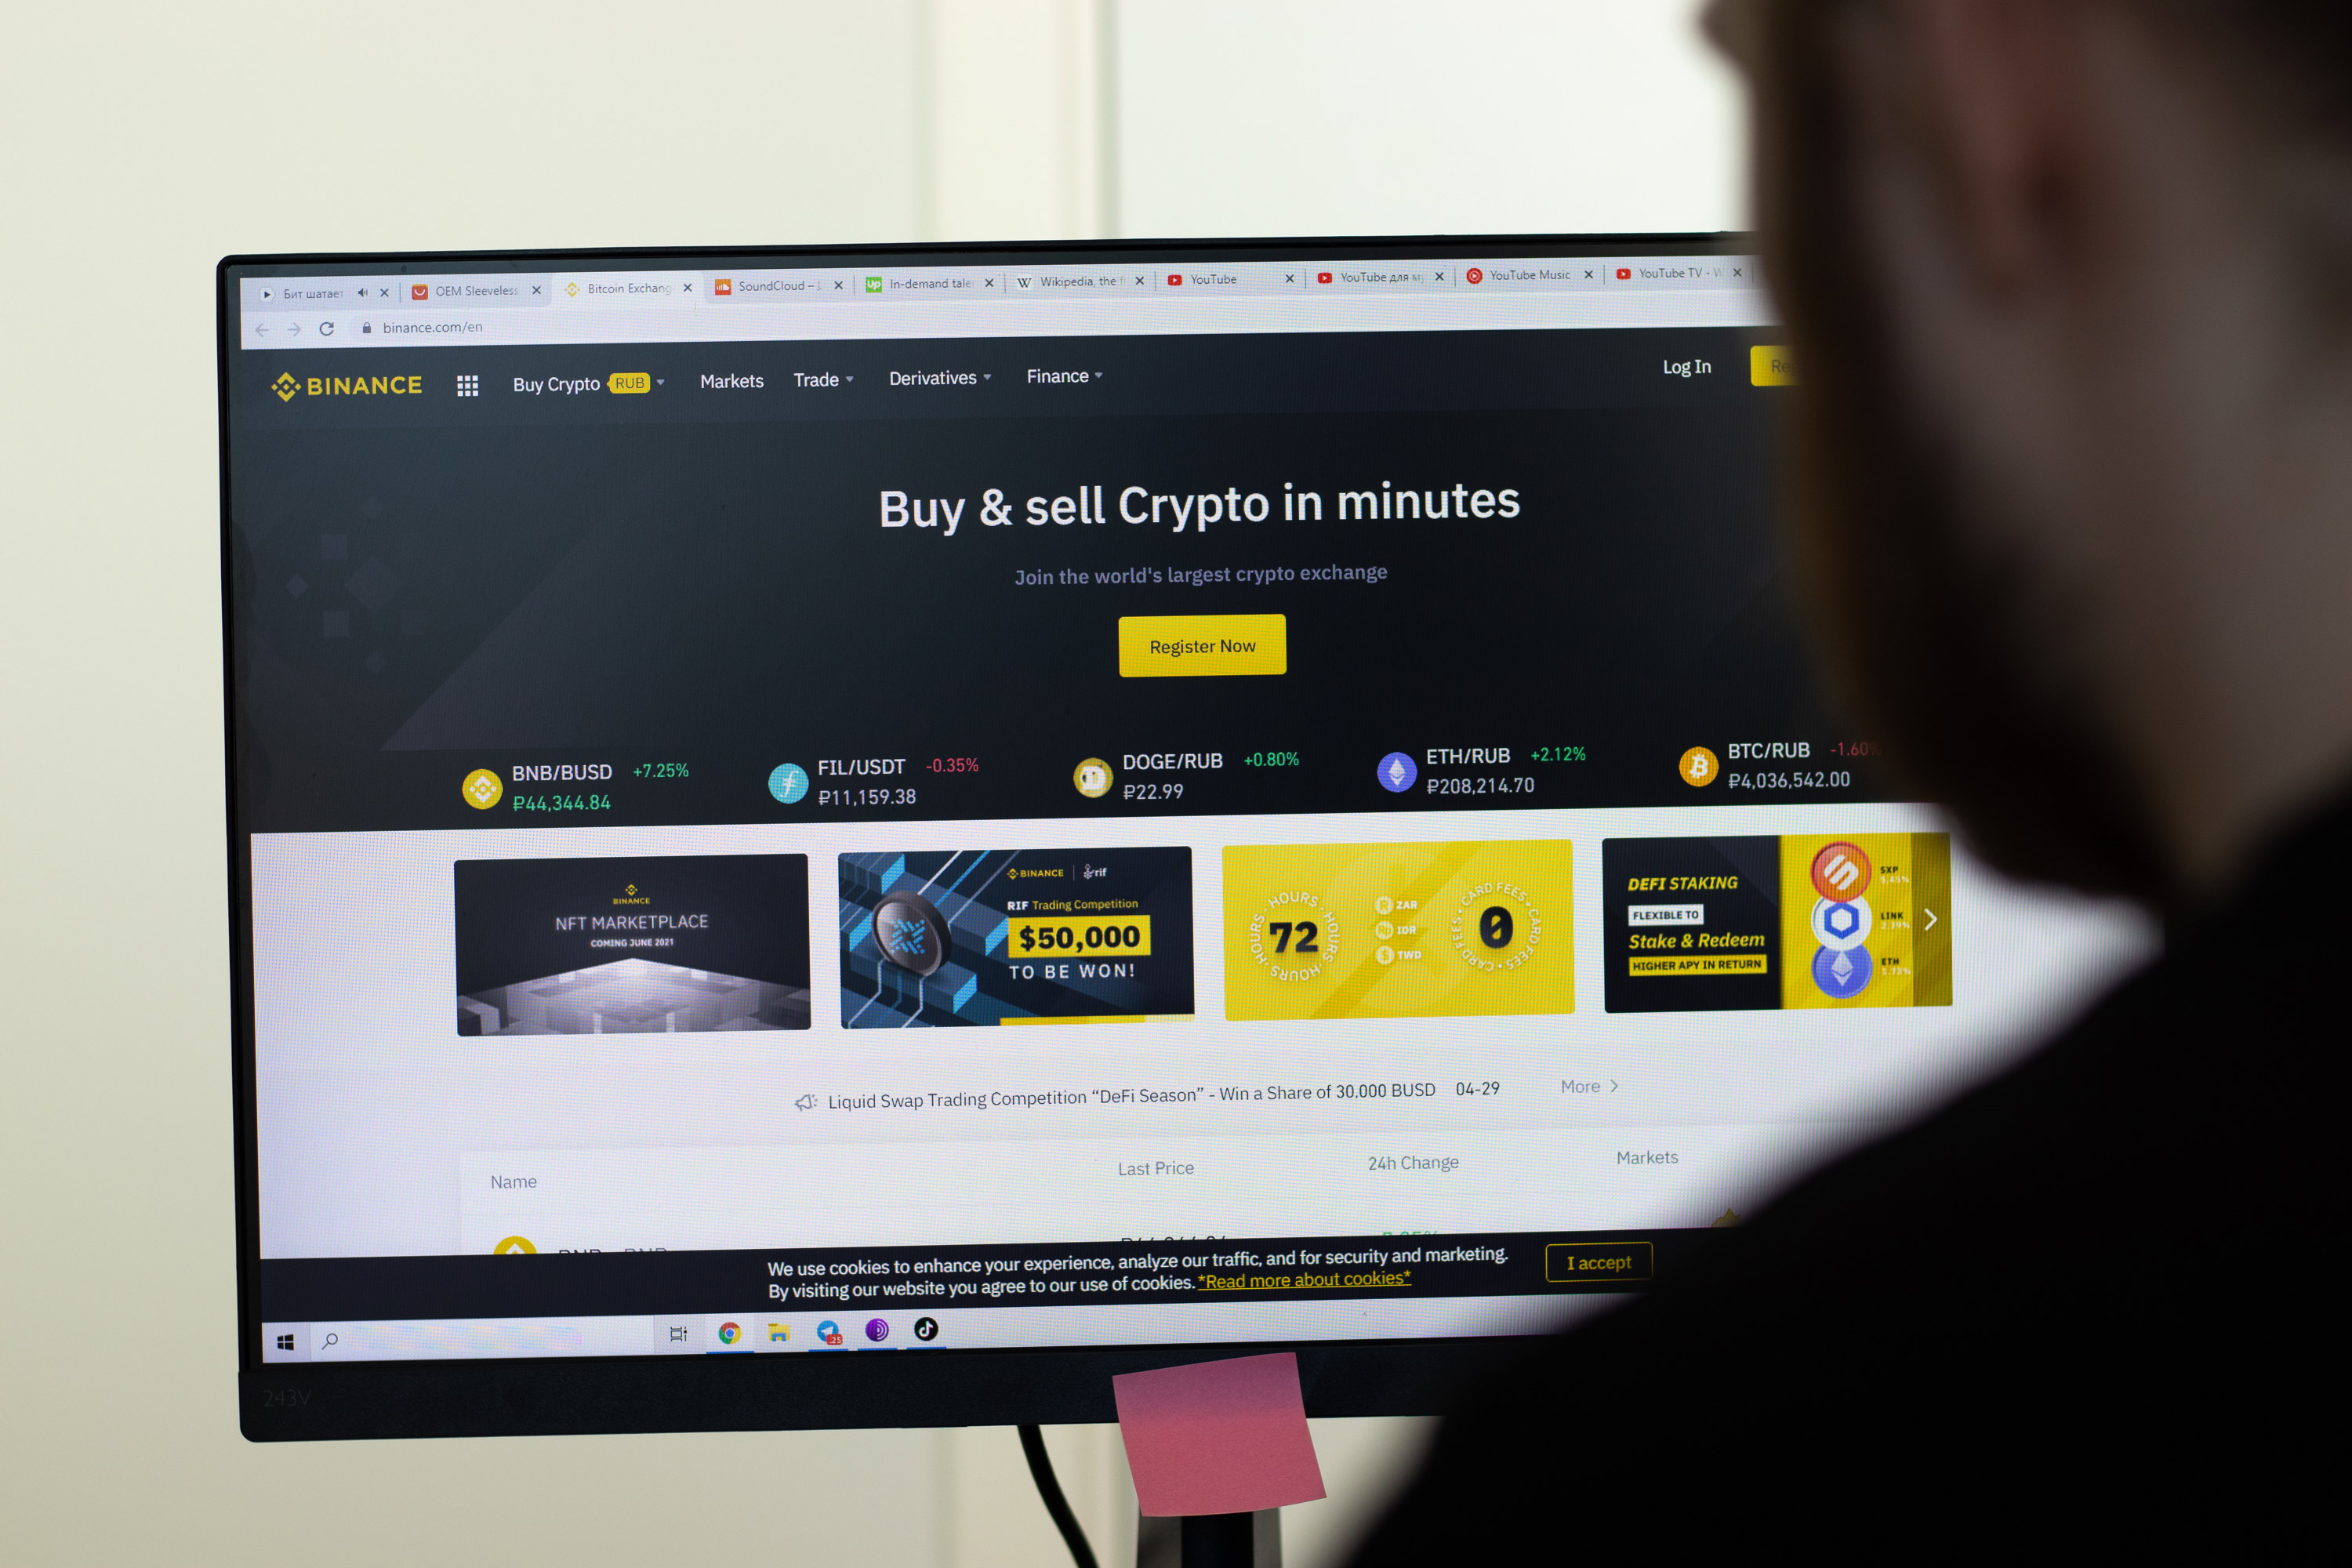 Regulators are keeping a close watch on crypto